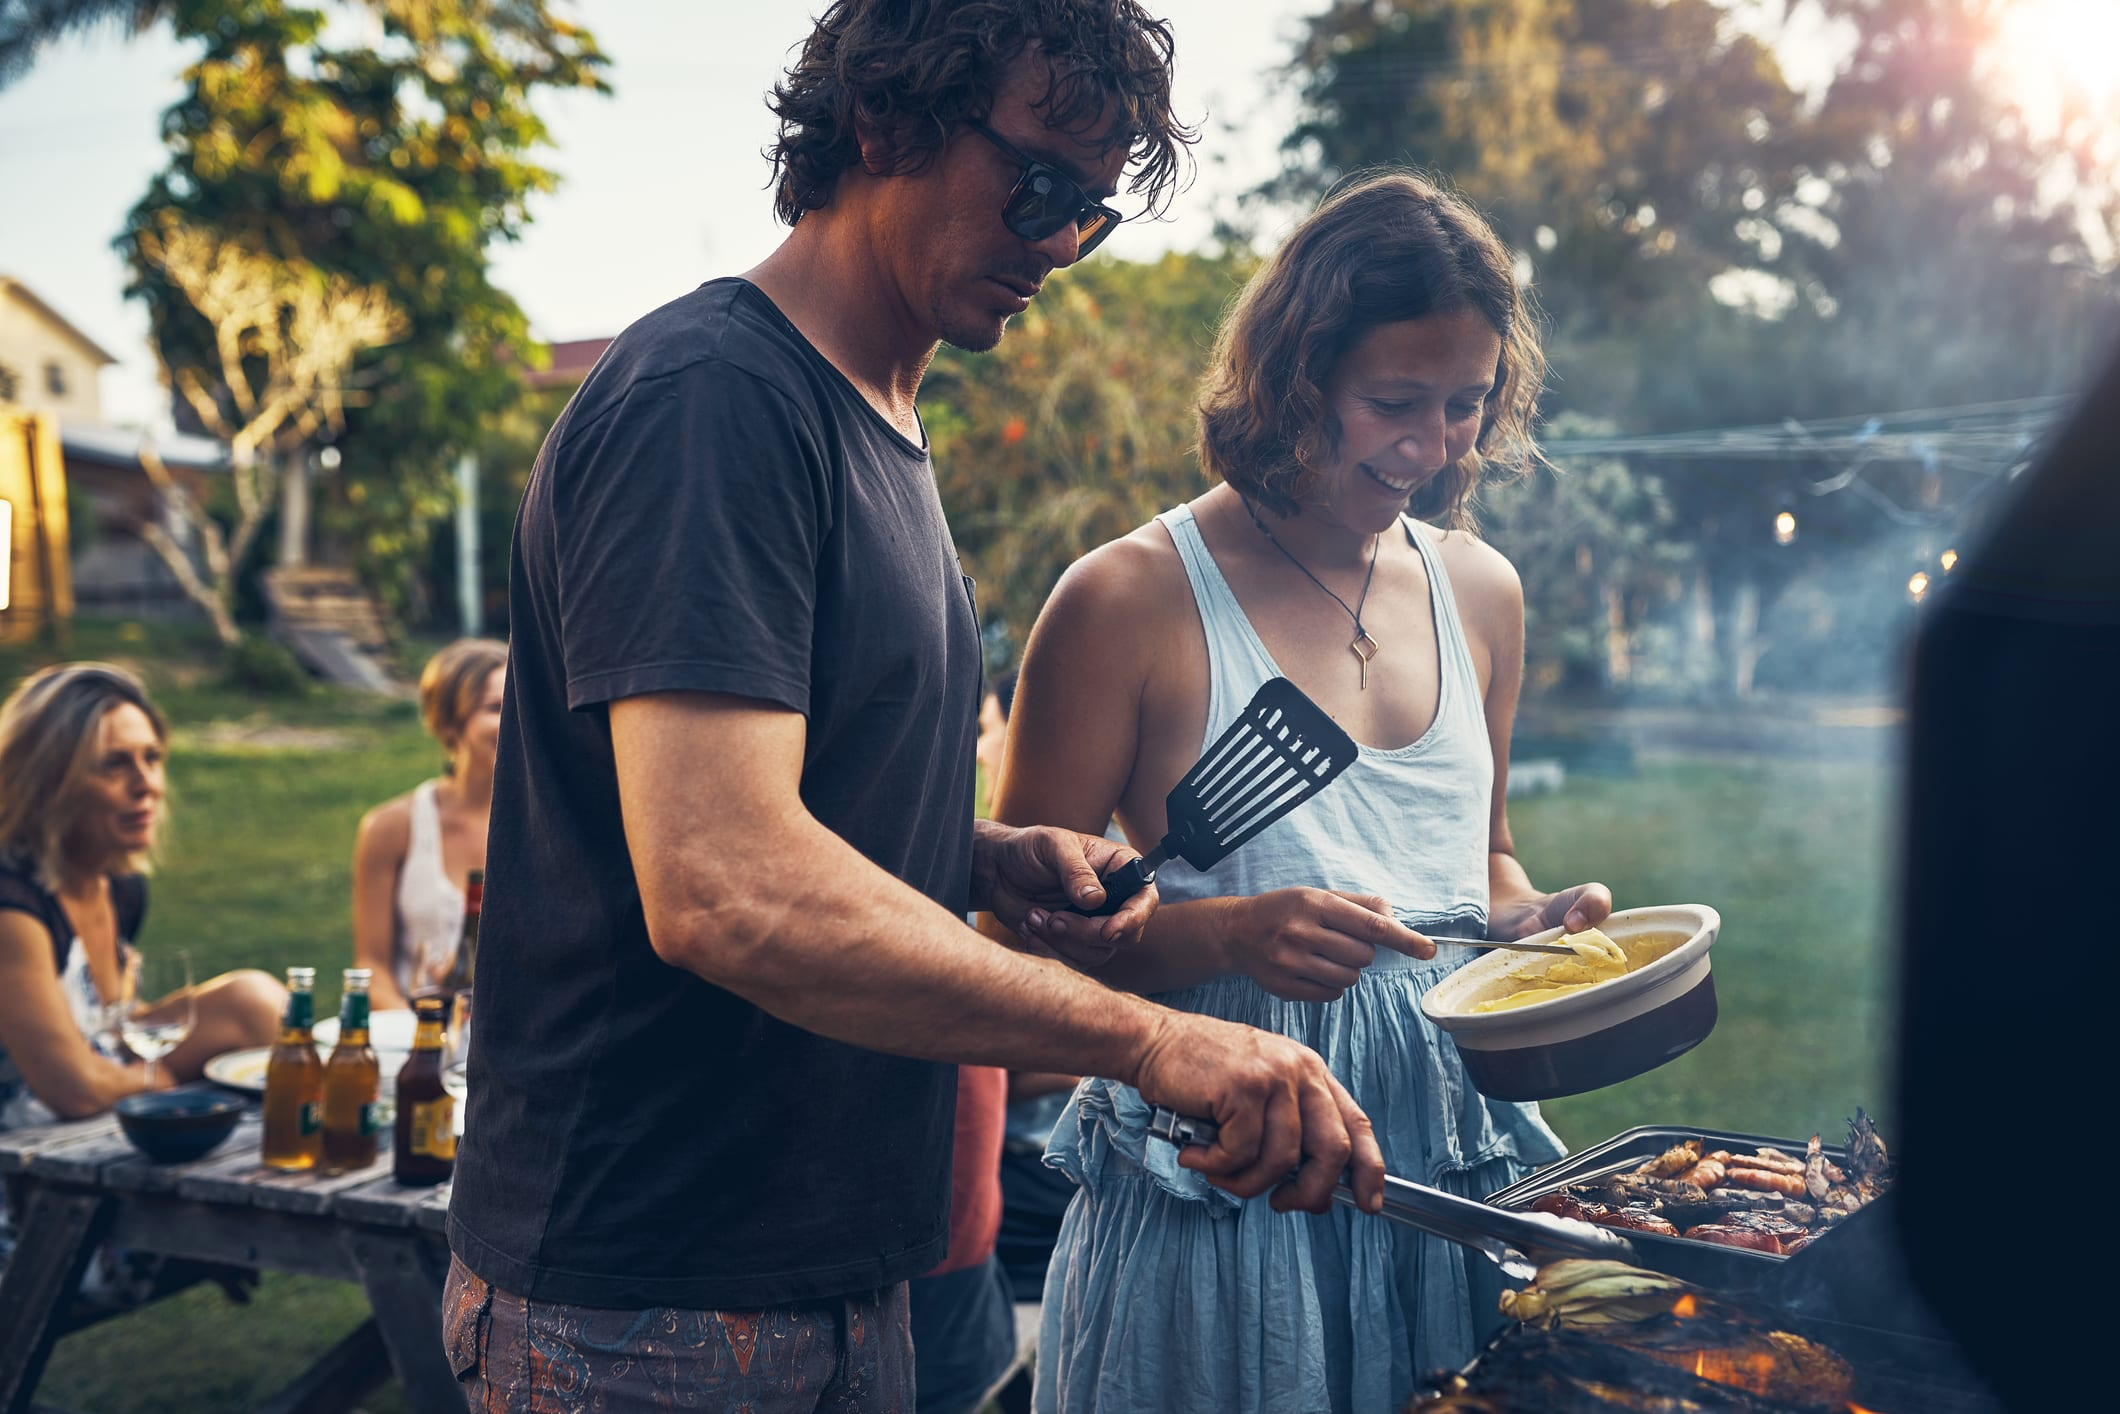 man and woman grilling food